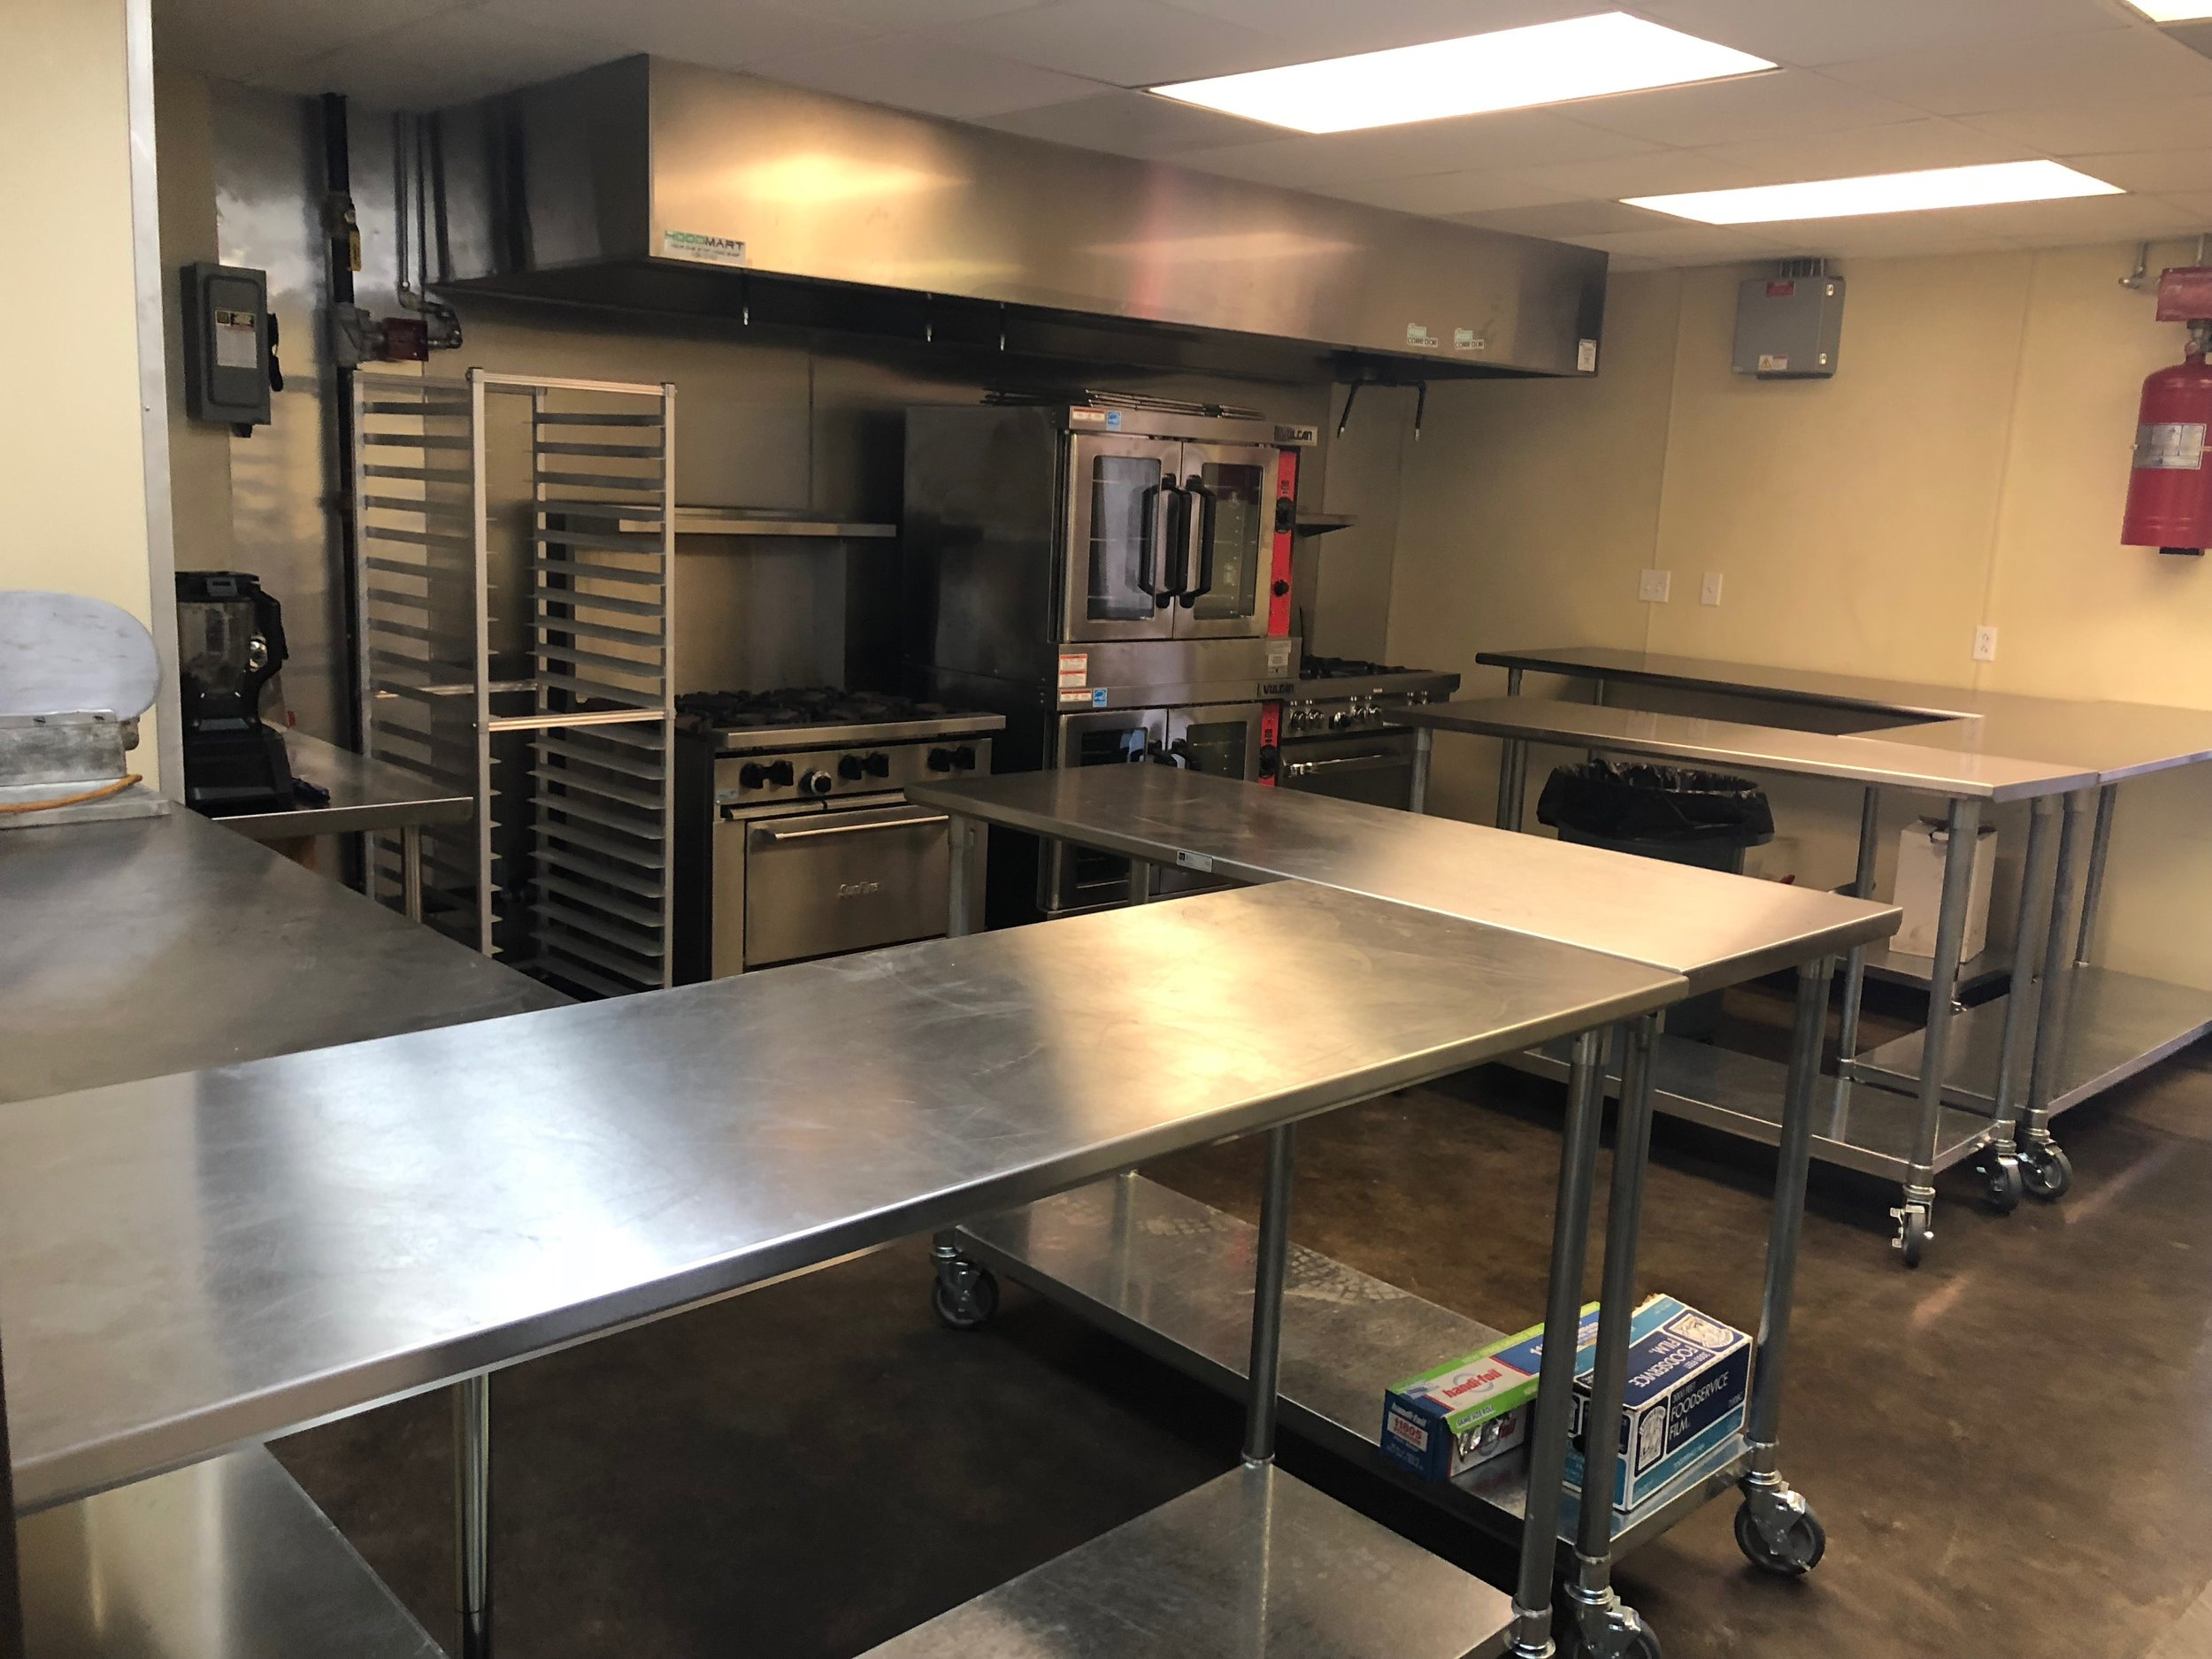 The Annex currently has a 1000 square foot shared use kitchen with 12 feet of hood space and a variety of equipment available